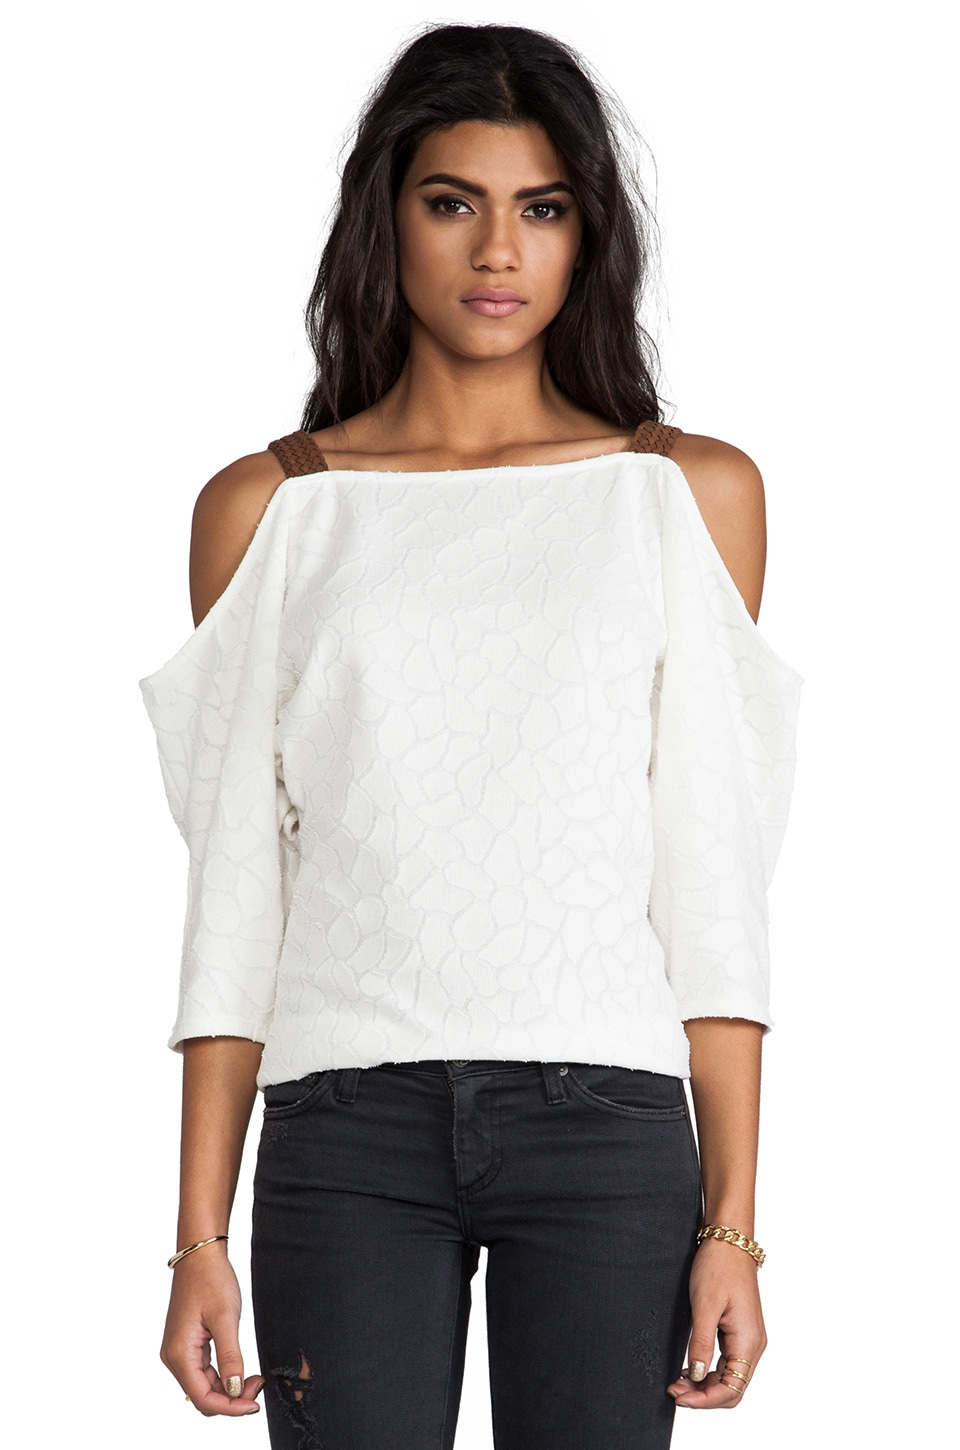 VAVA by Joy Han Wendy Strap Top in White